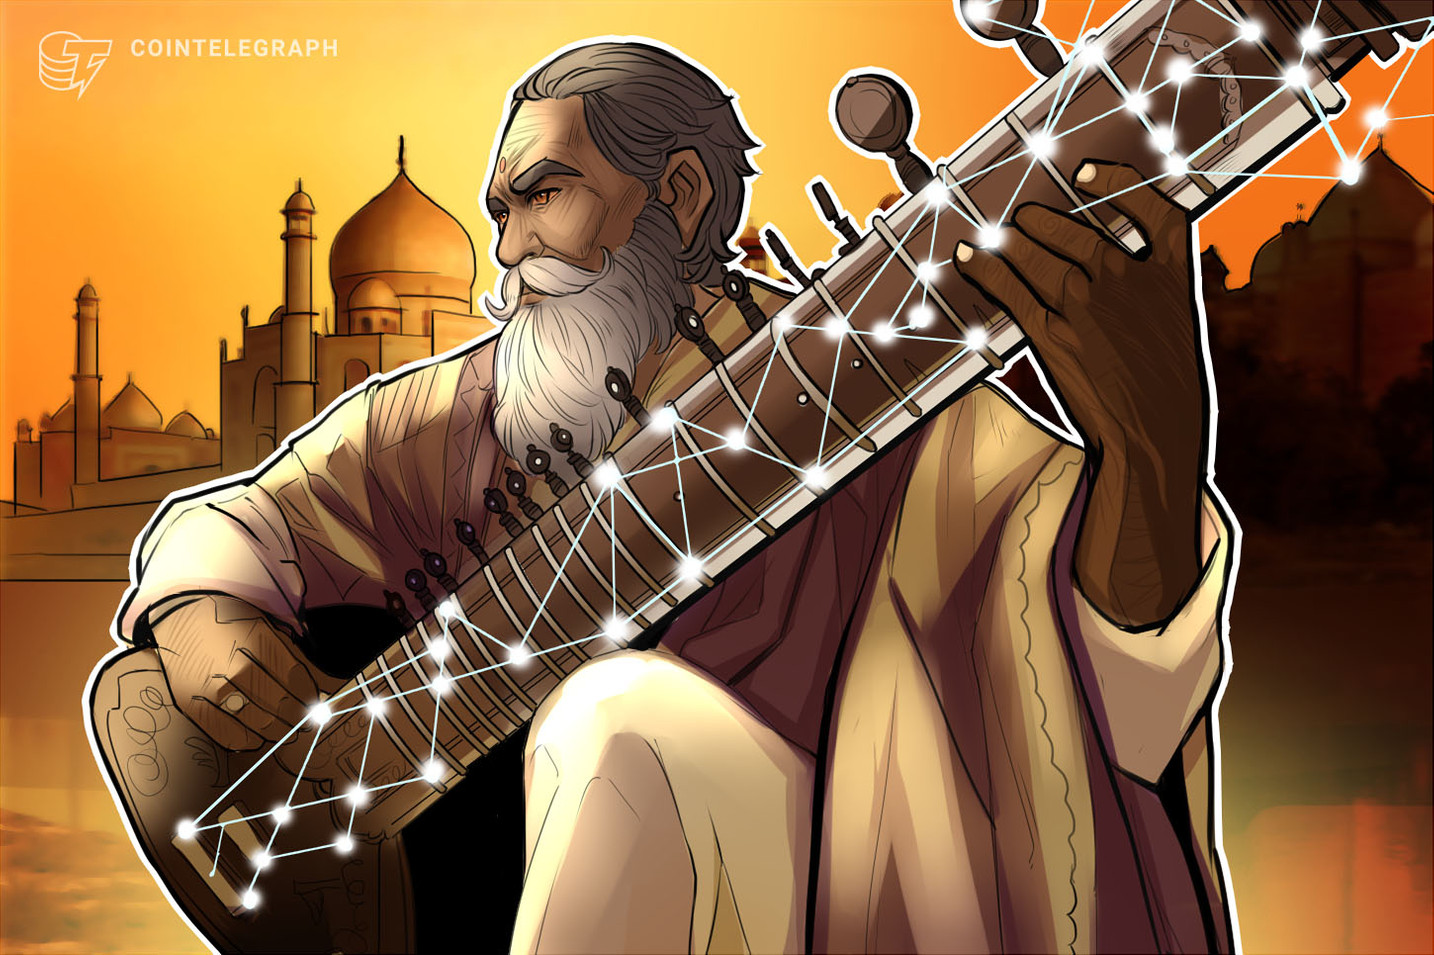 Indien: Regierung will nationale Blockchain-Strategie herausbringen